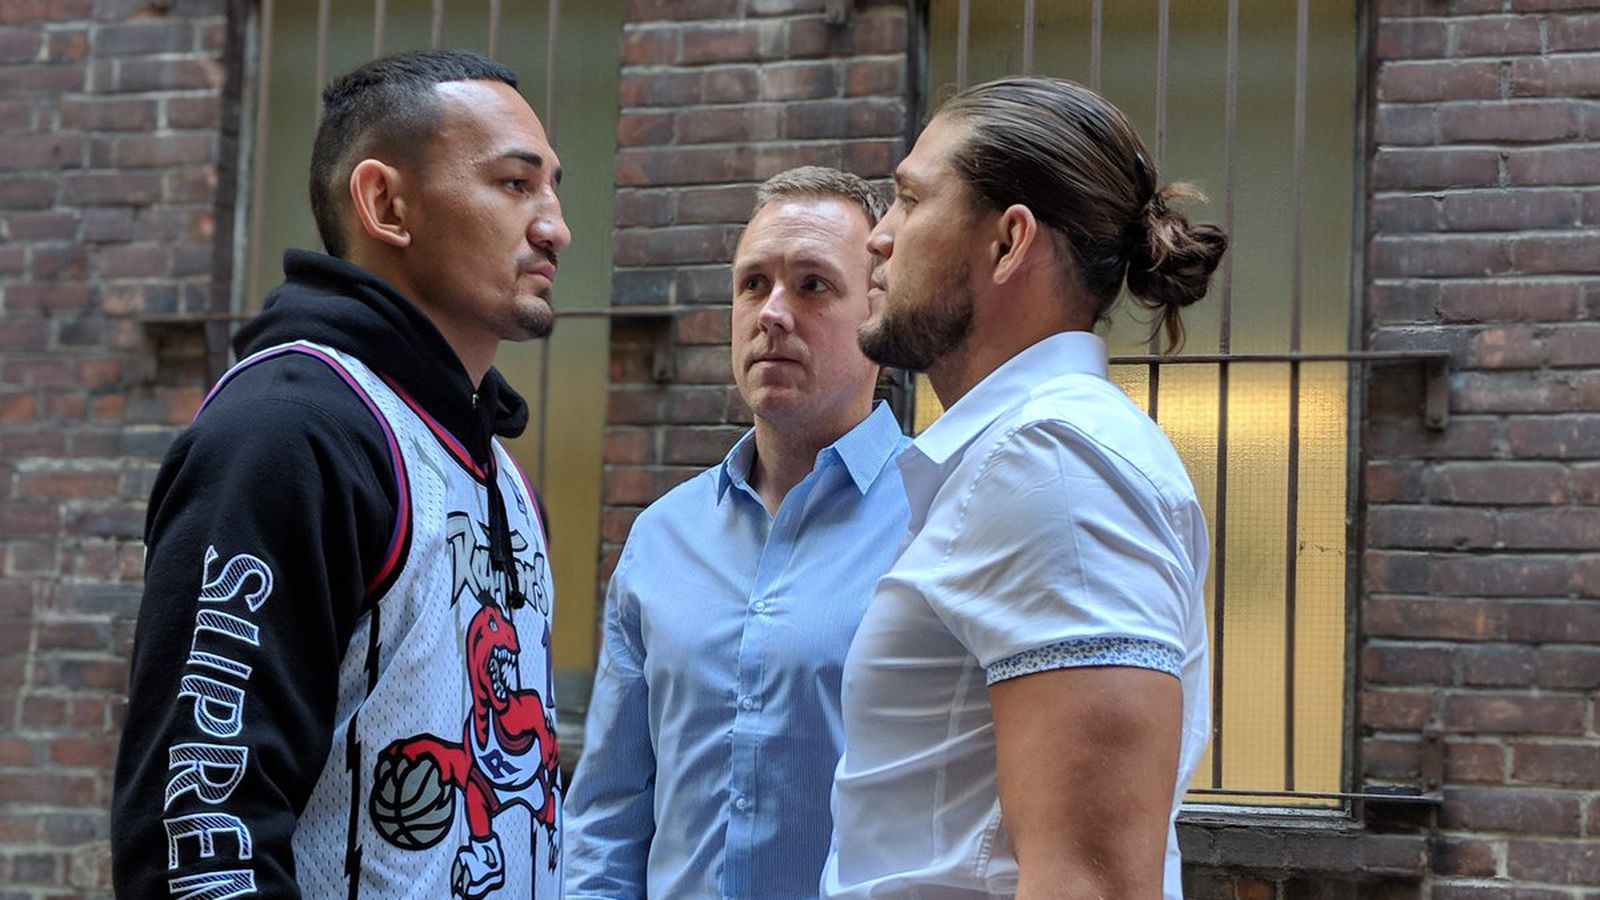 Face Off! Watch Max Holloway stare down Brian Ortega ahead of UFC 231